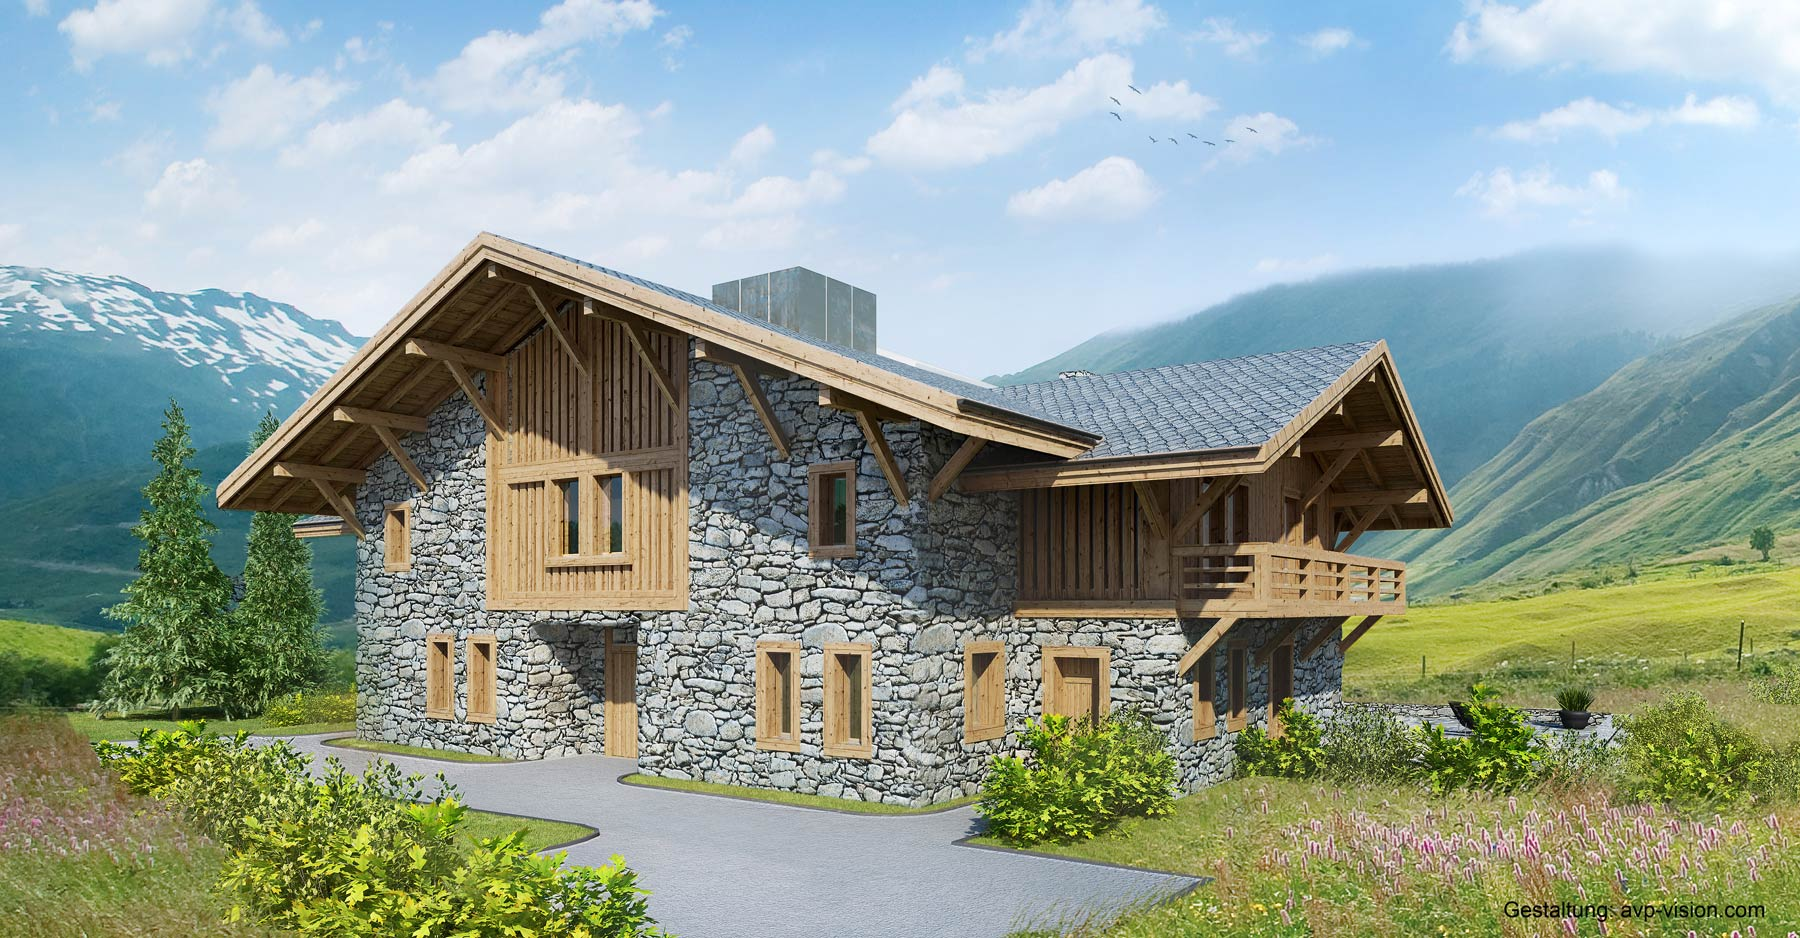 Andermatt Swiss Alps AG Relies On AGs Experience Traditional Gstaad Style Chalets Combined With